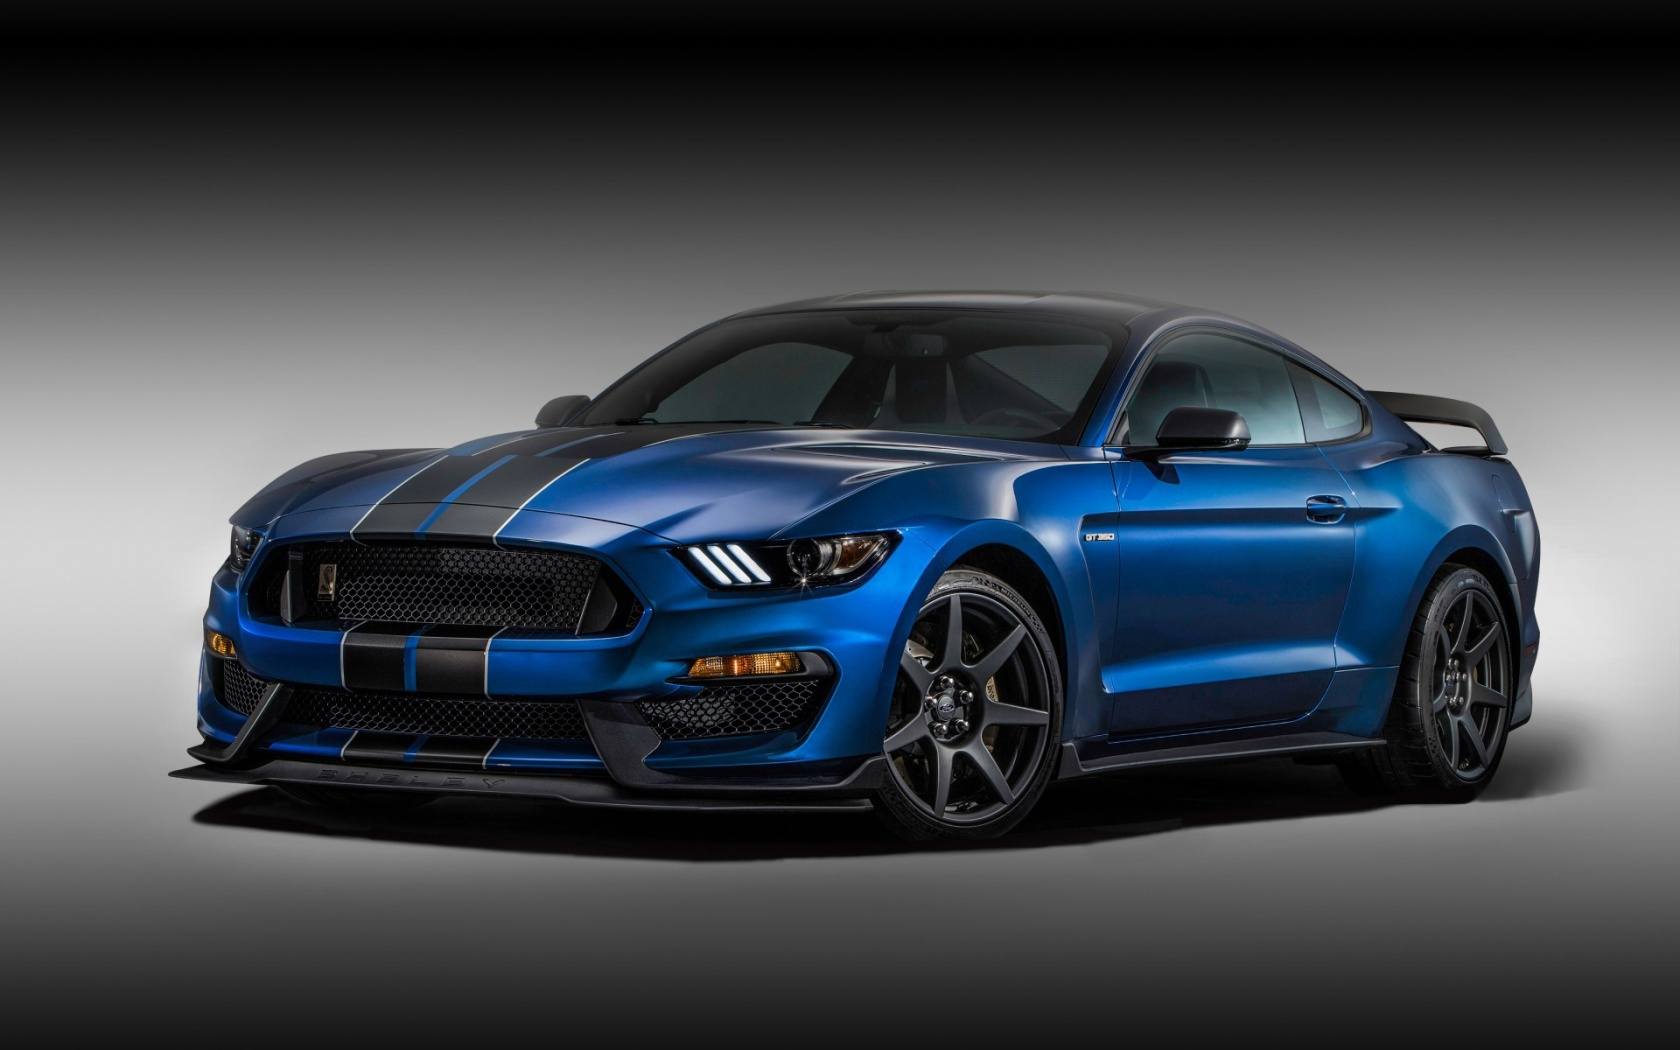 2019 Ford Mustang Shelby GT350R photo - 1